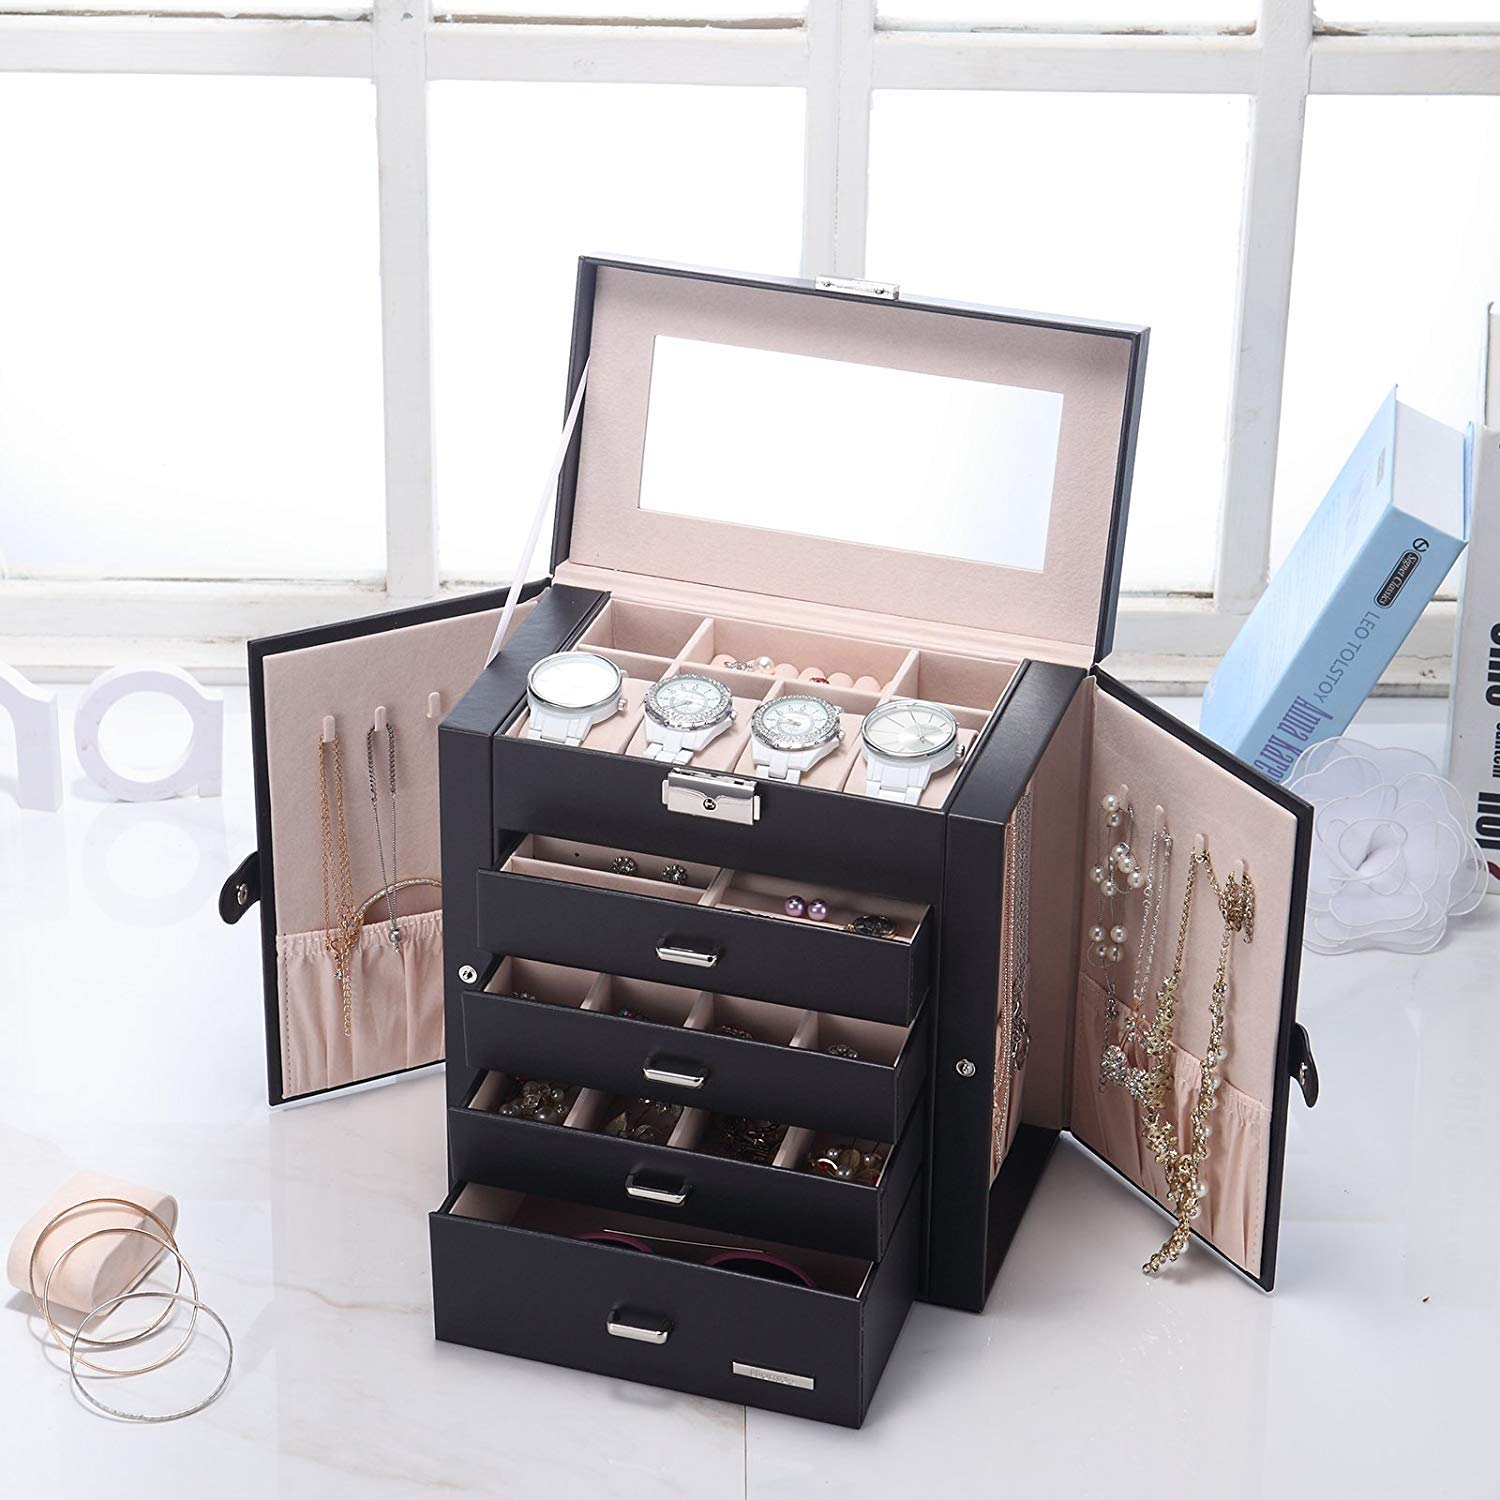 SSLine Deluxe Large Jewelry Box 5-Tier Leather Jewelry Storage Chest Portable Travel Case with Watch Sunglasses Earring Holder Organizer - Black by SSLine